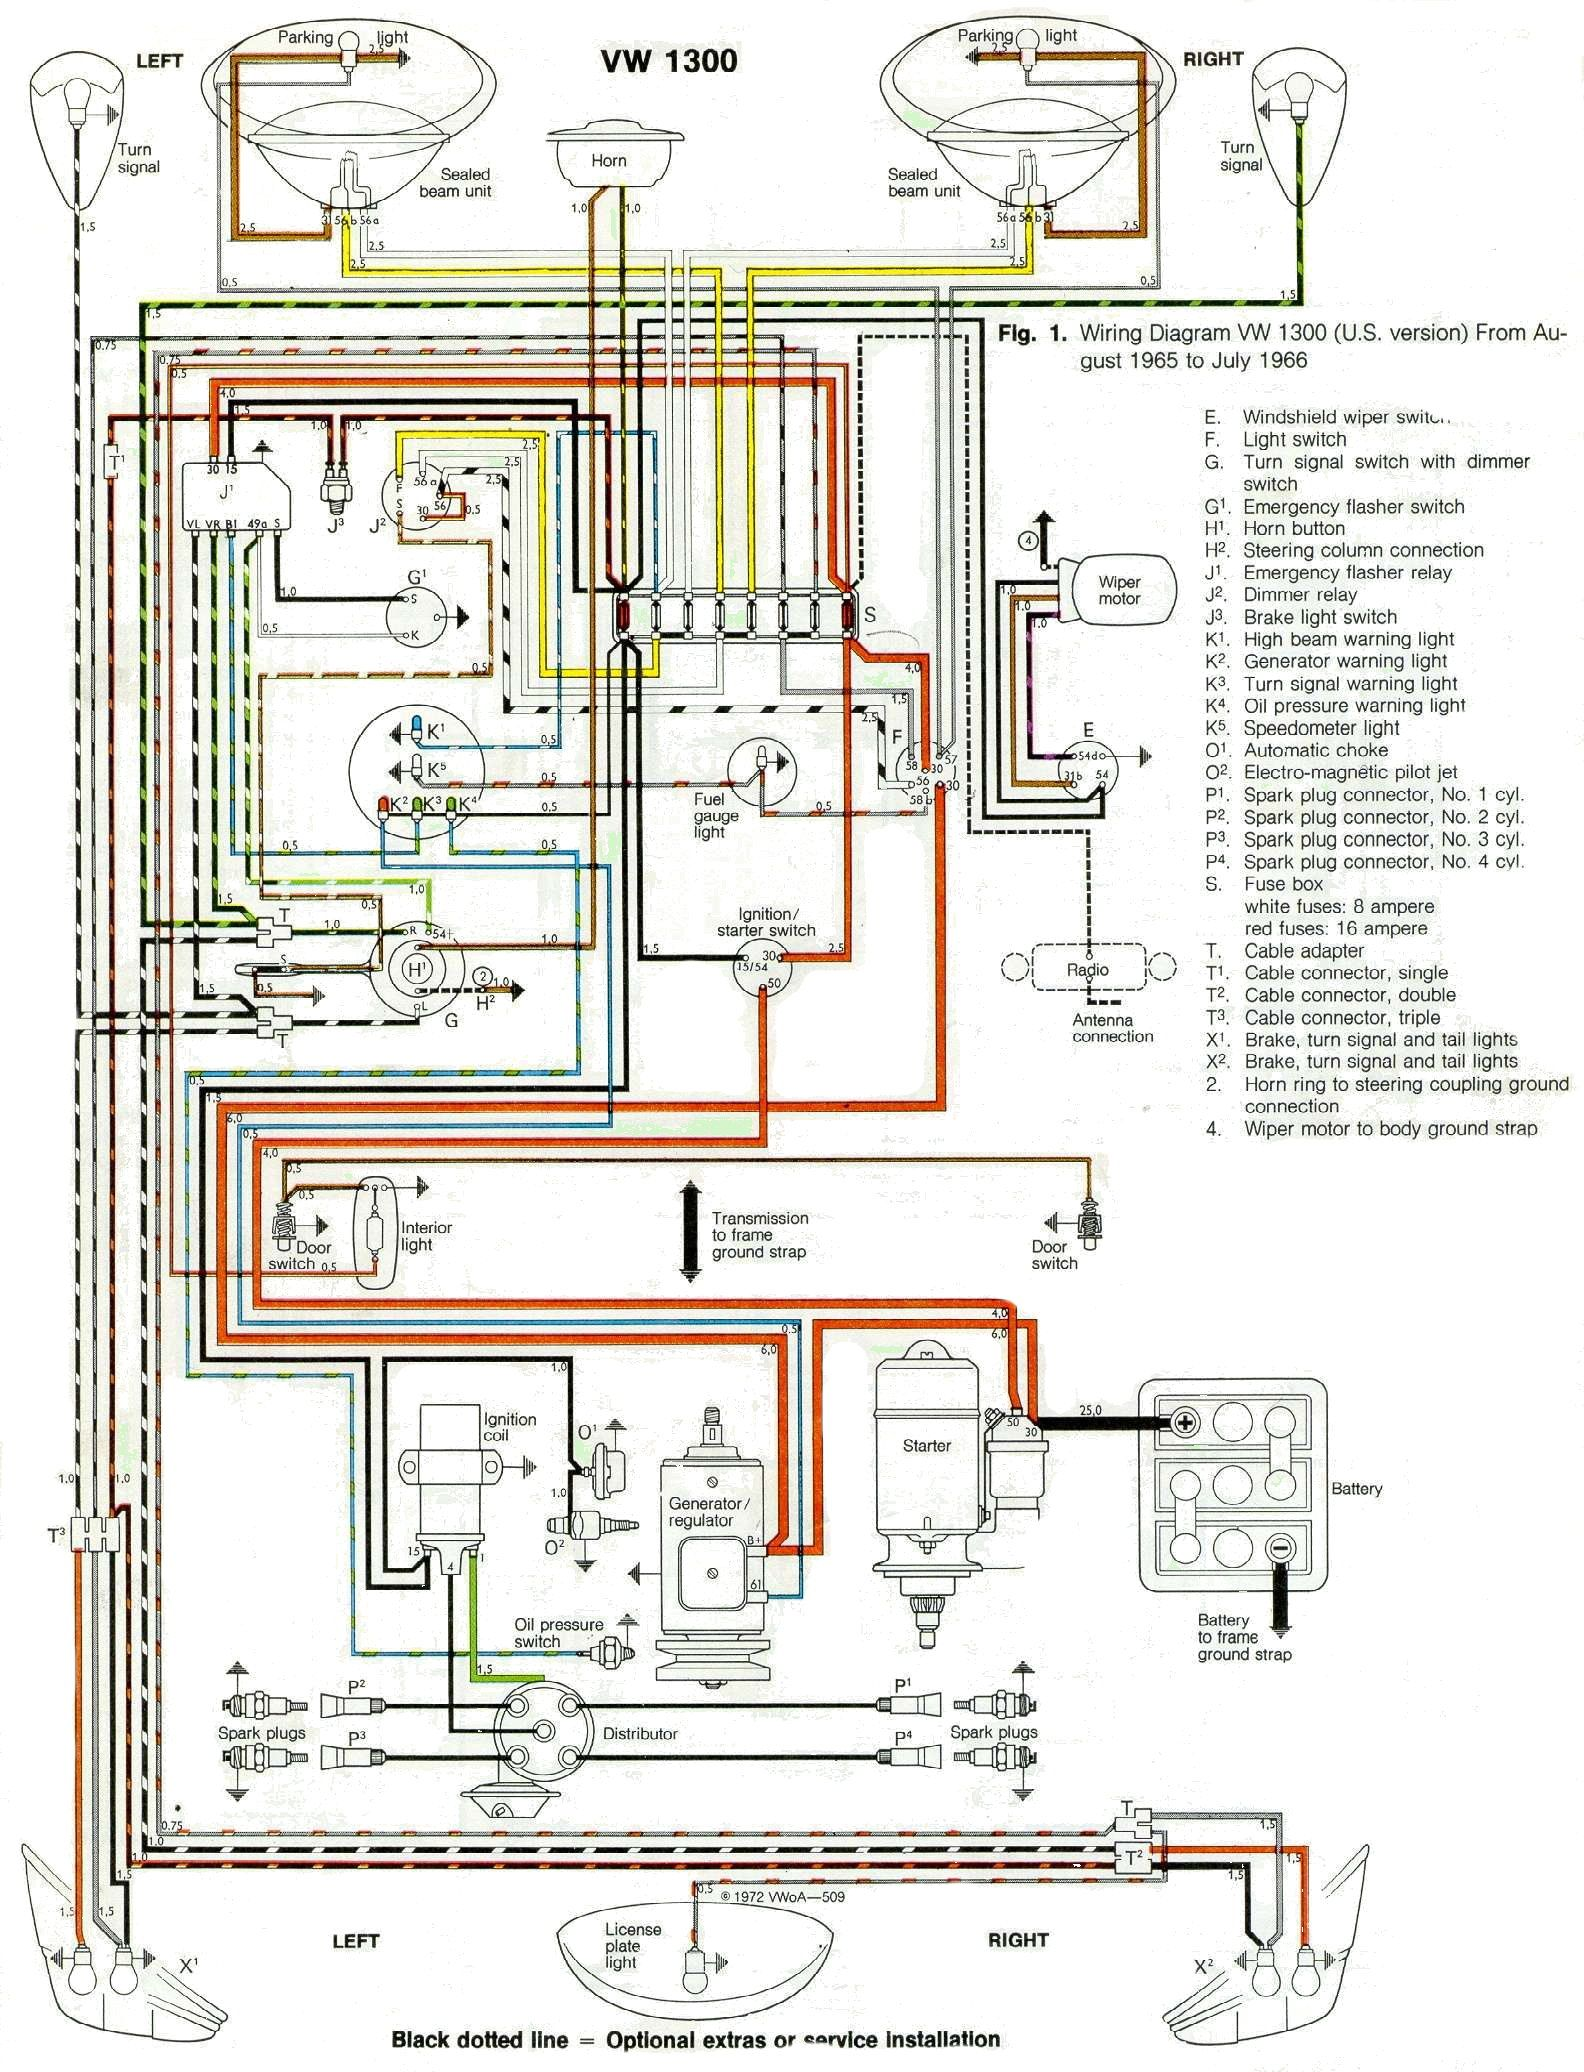 1966 Wiring Diagram | Vw beetles, Beetle, Vw beetle classicPinterest